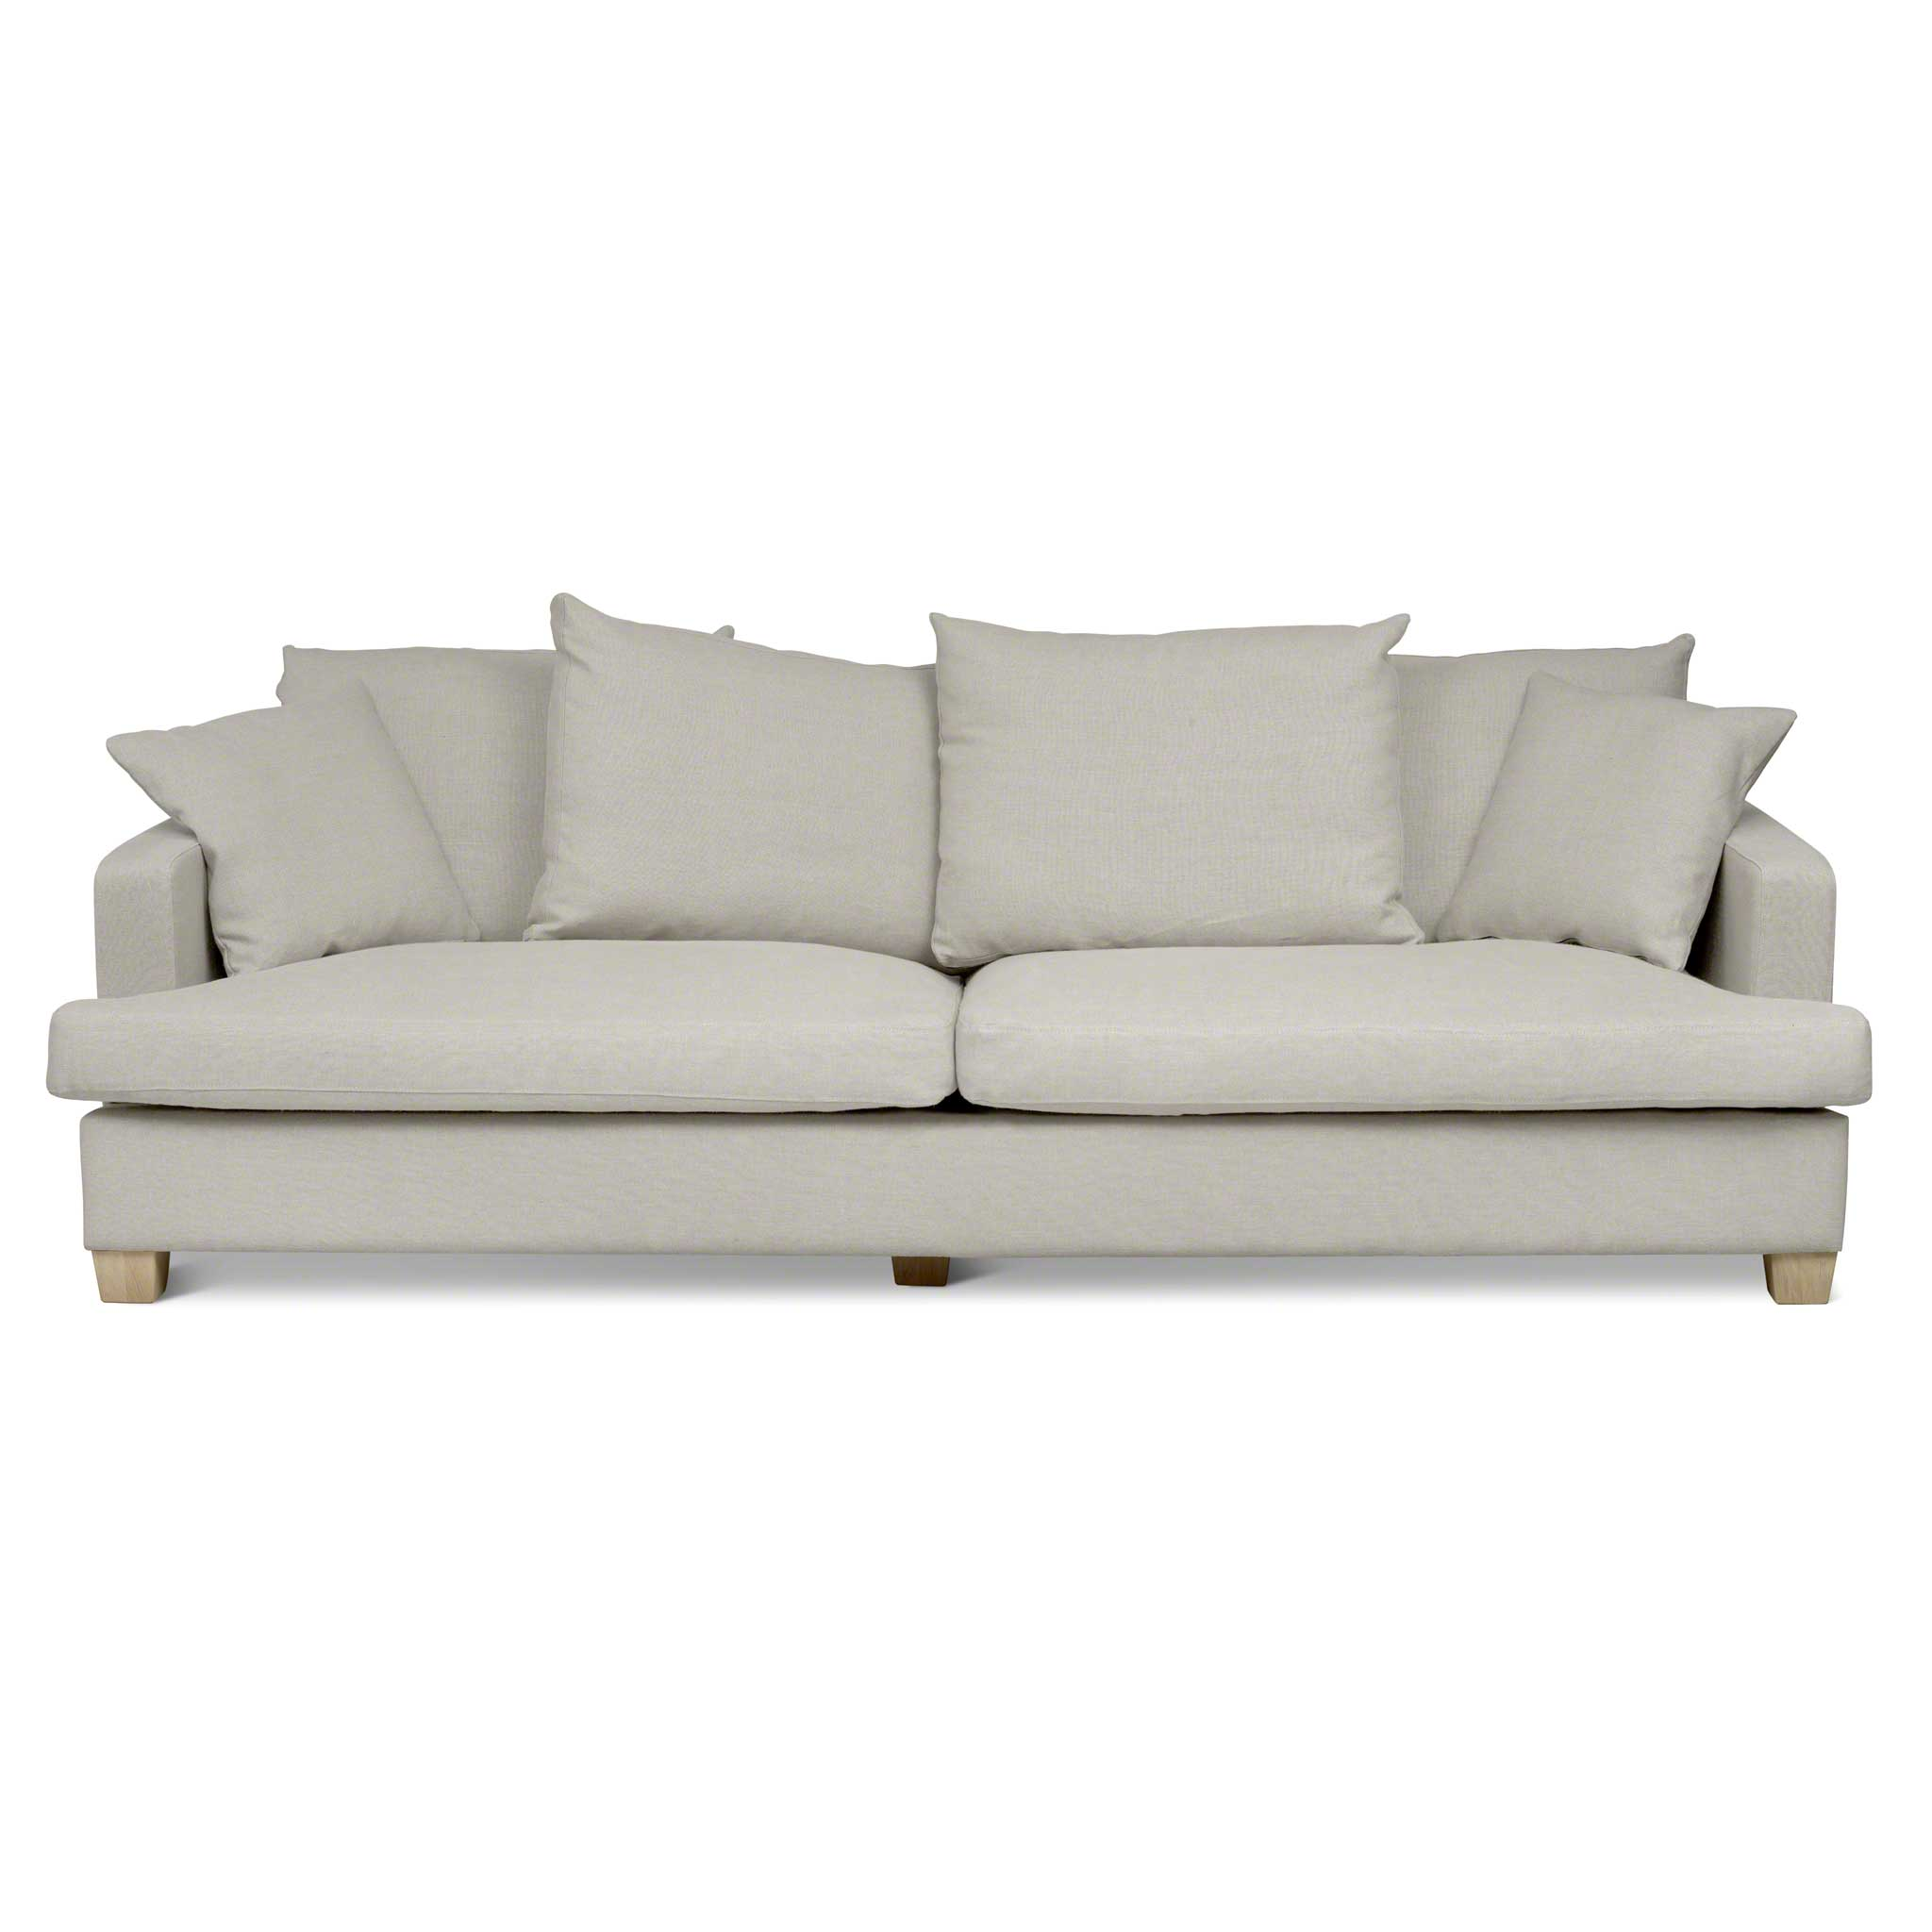 4-sits soffor